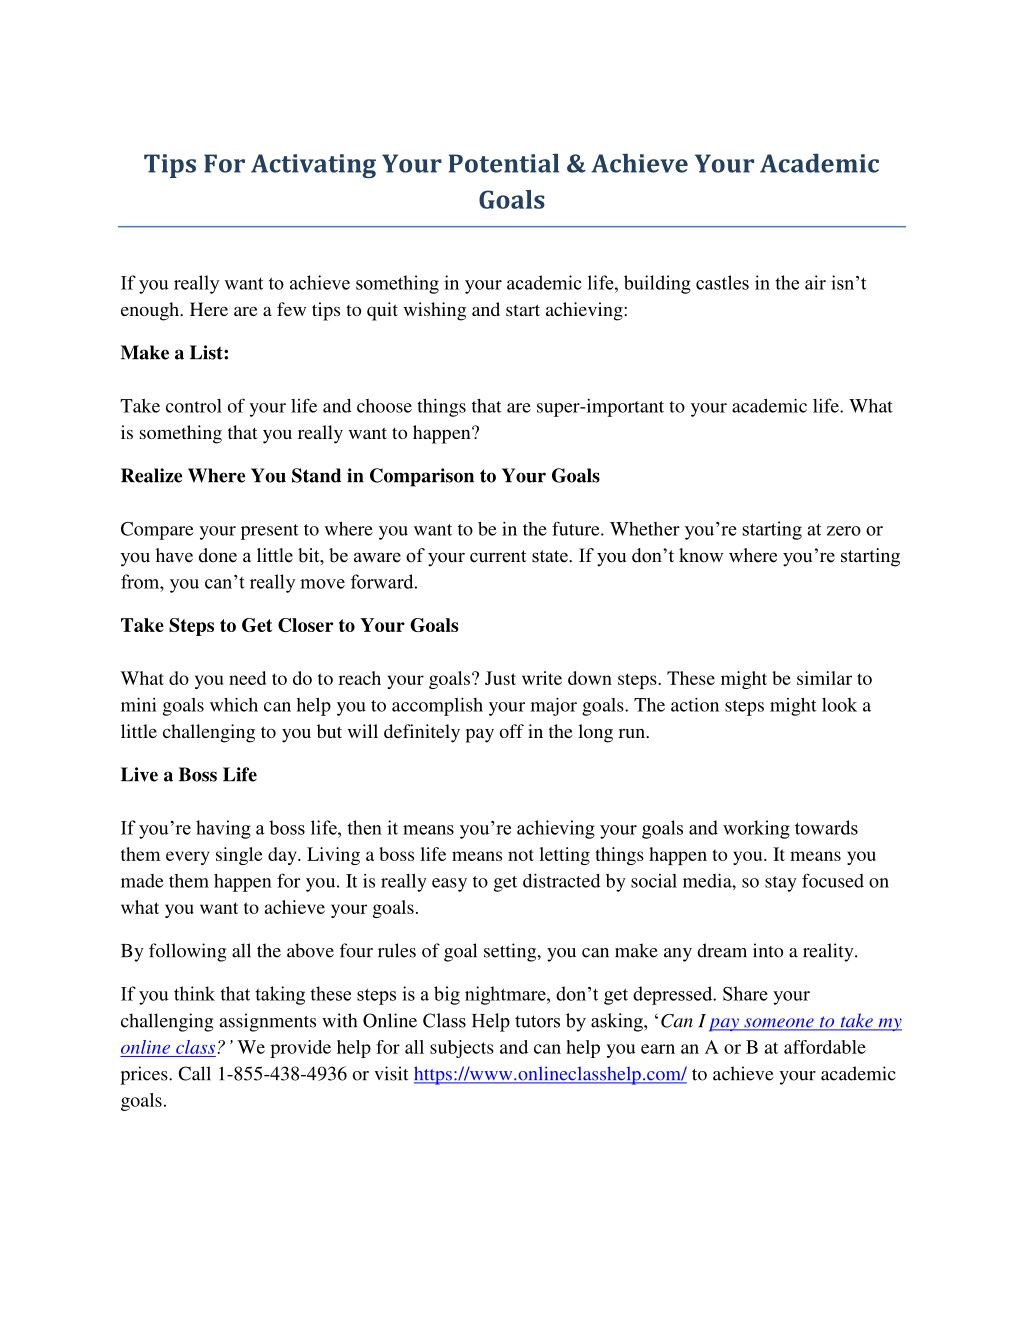 Ppt Tips For Activating Your Potential Achieve Your Academic